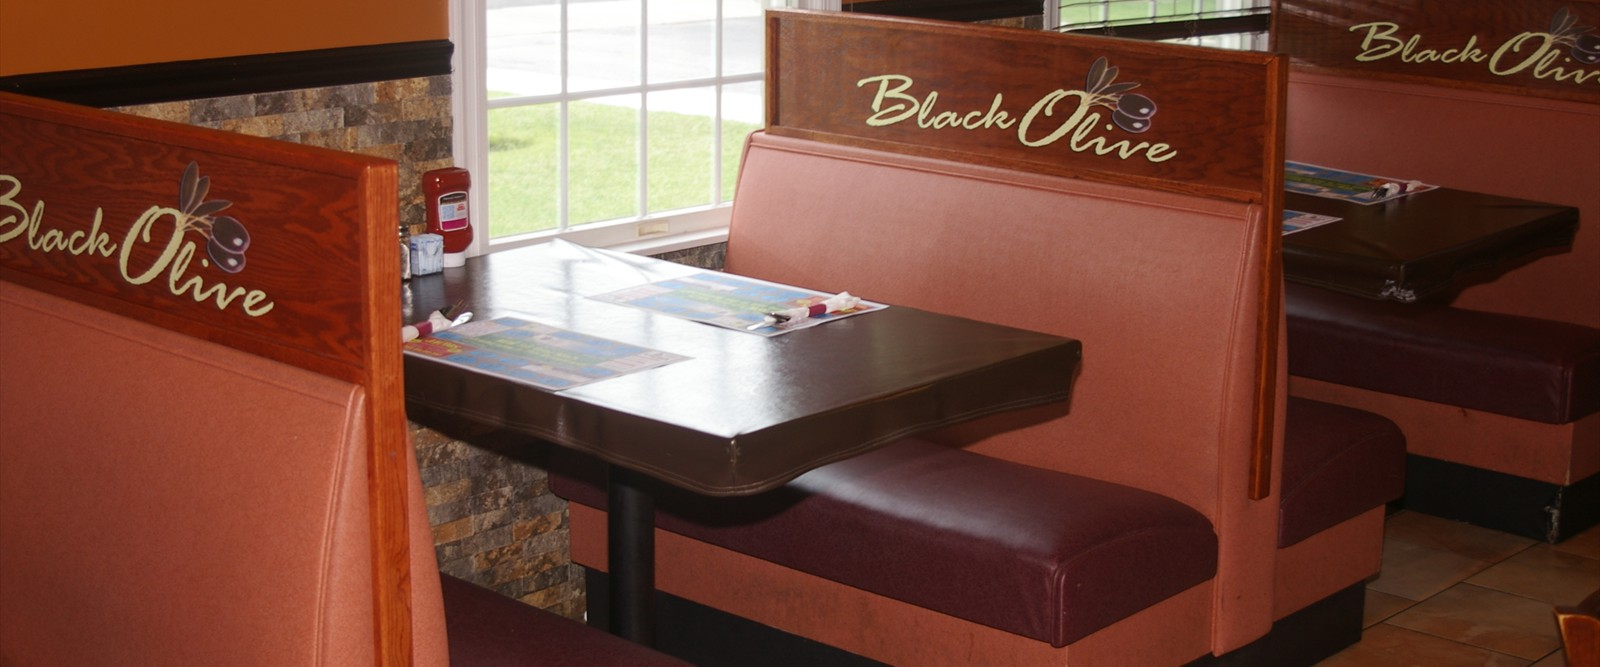 Comfortable Setting In A Family Friendly Atmosphere!